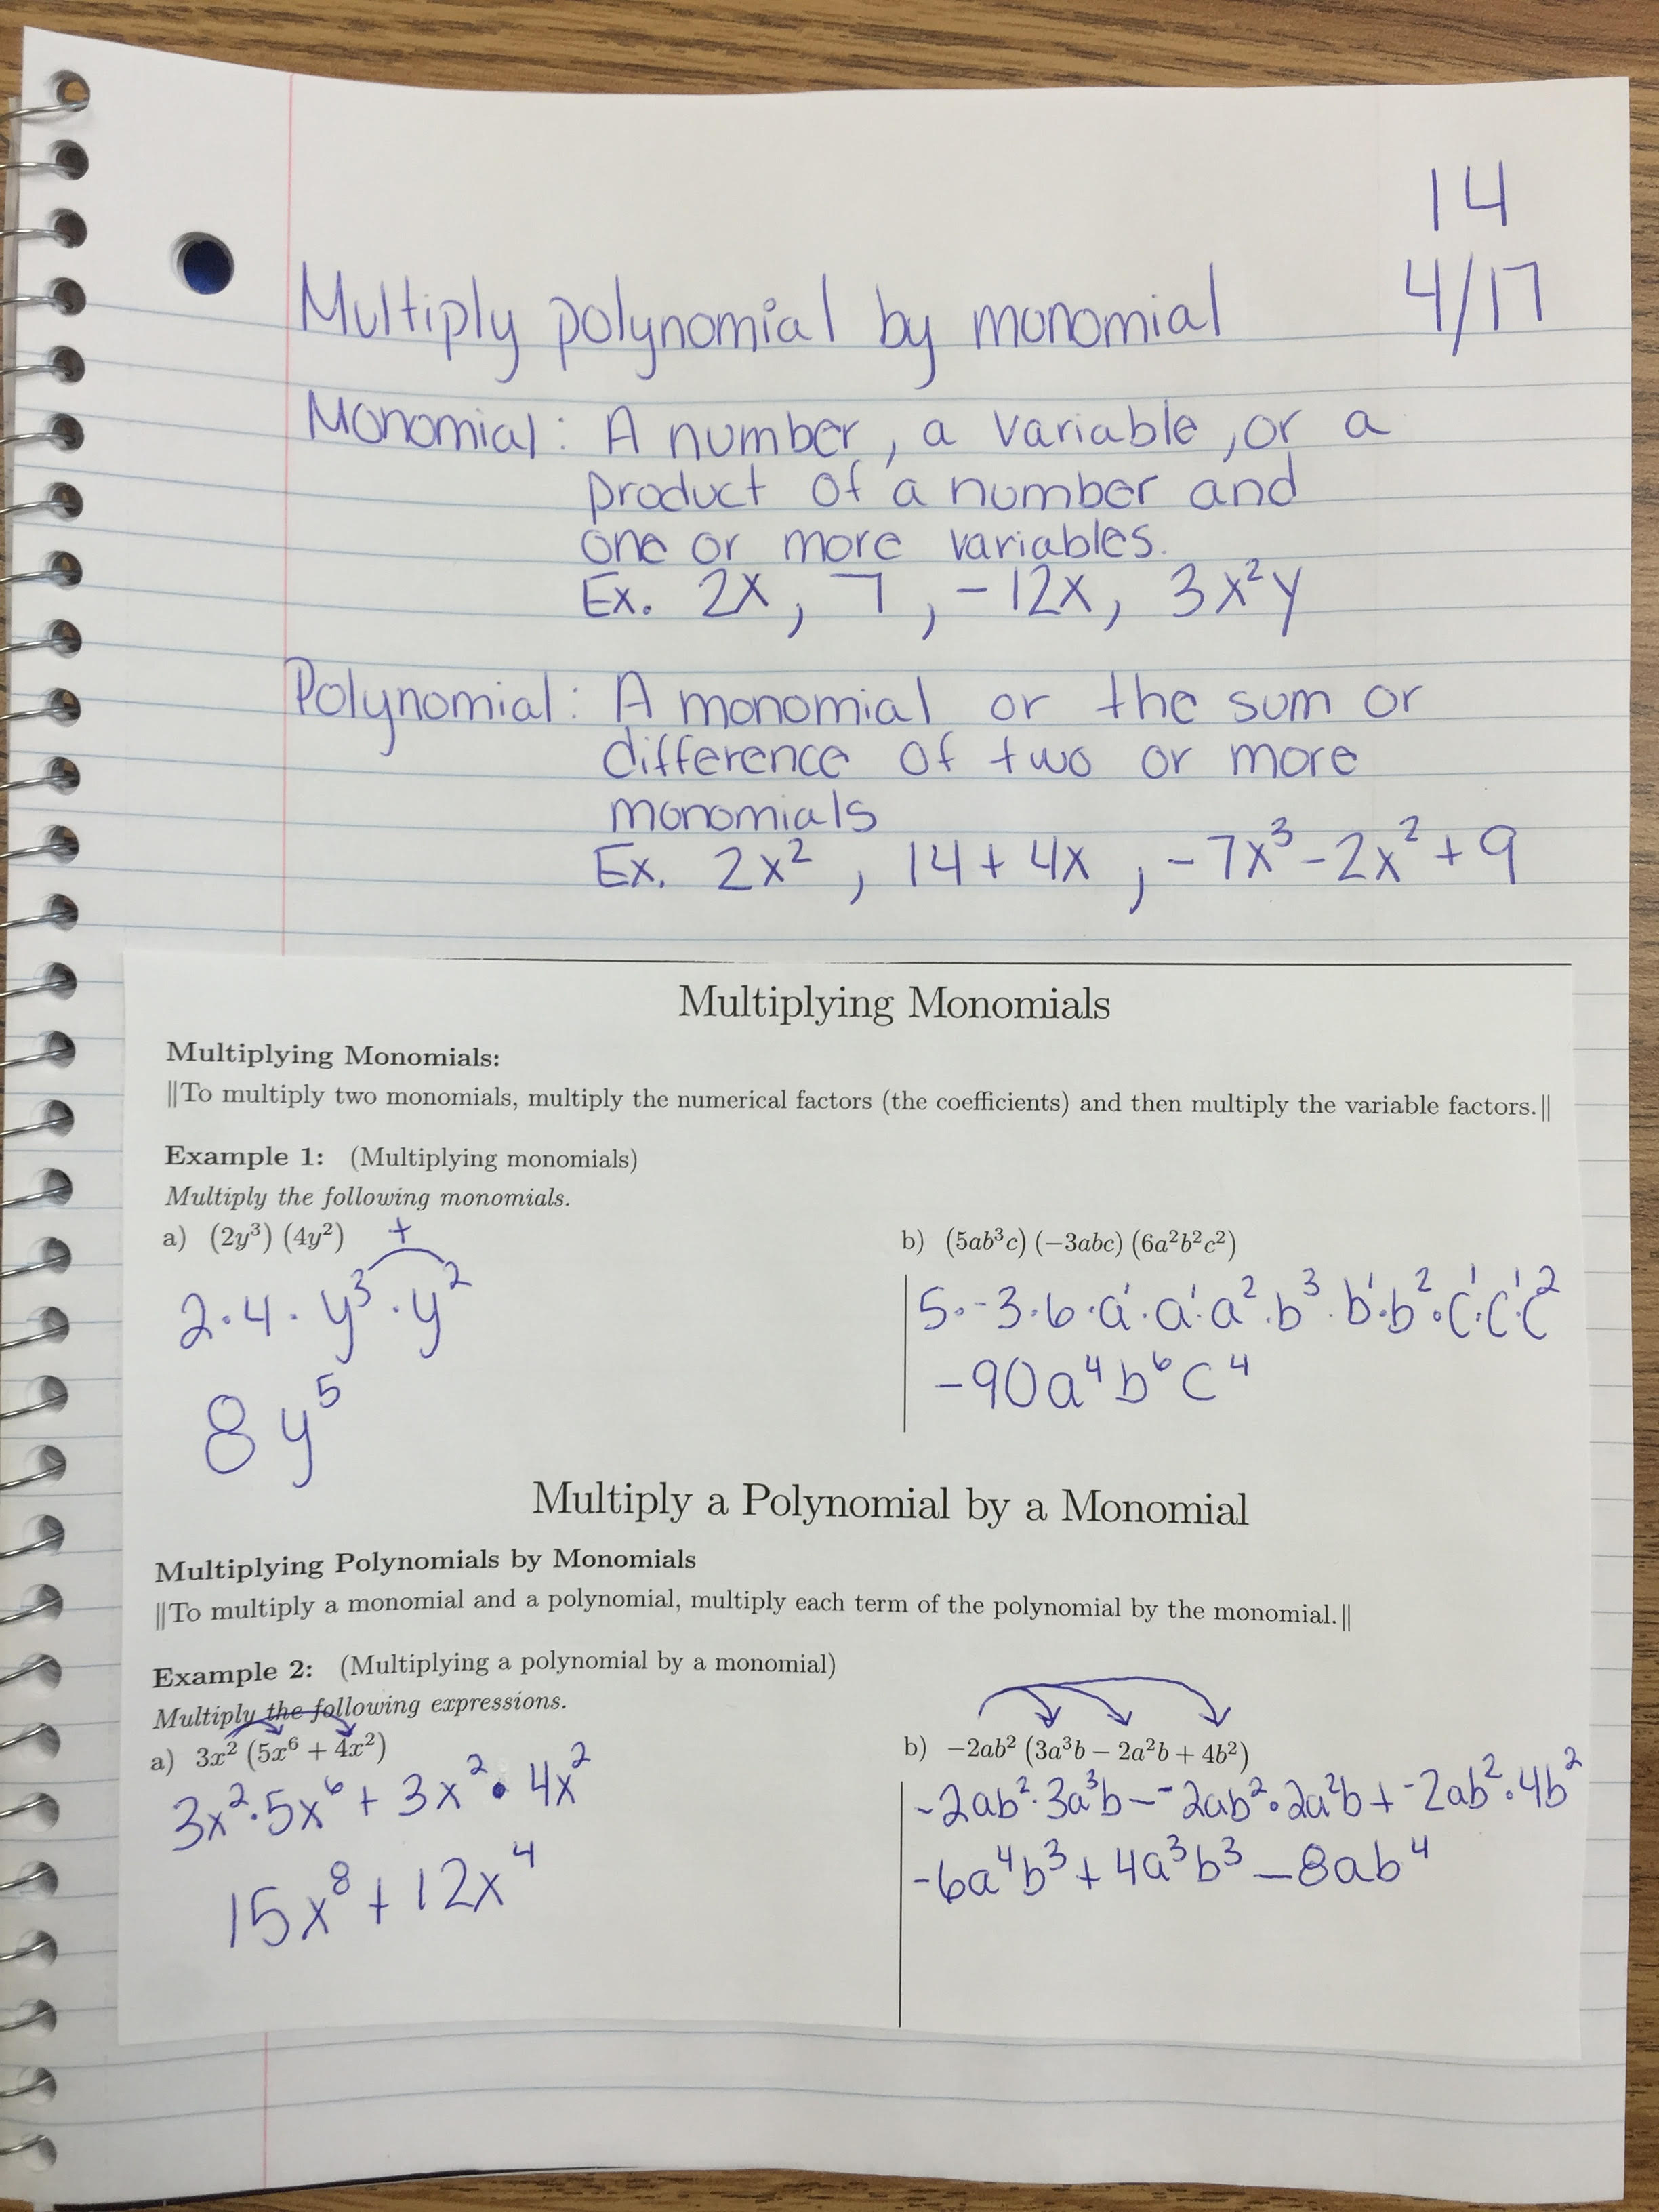 Algebra 1 – Multiplying a Polynomial by a Monomial Worksheet